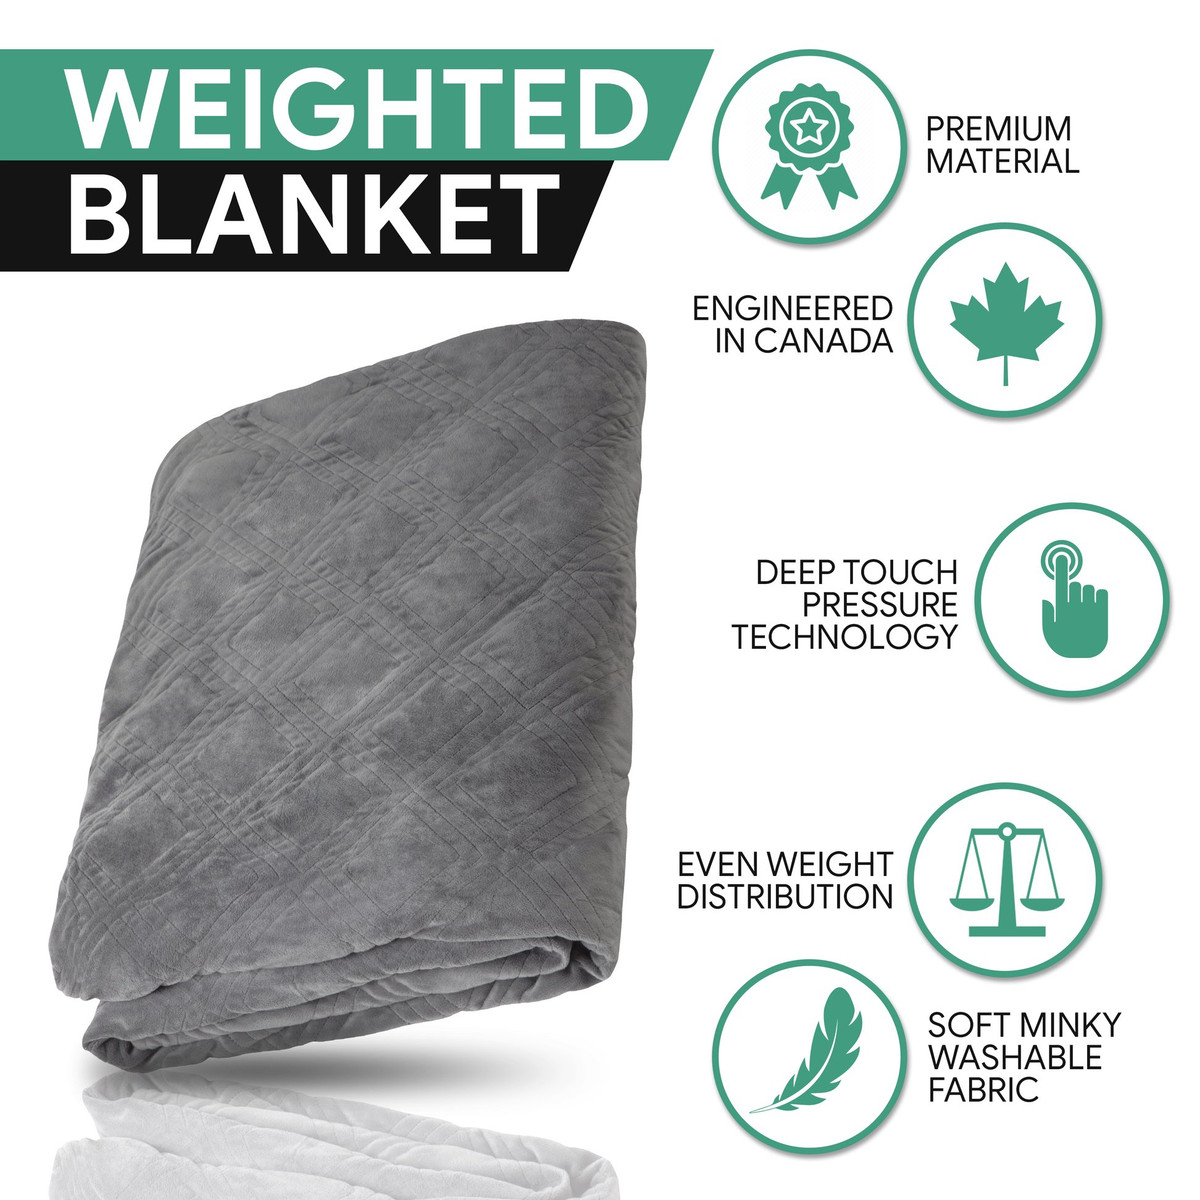 HUSH Classic Blanket with Duvet Cover - Queen 80x87 - 25 pounds